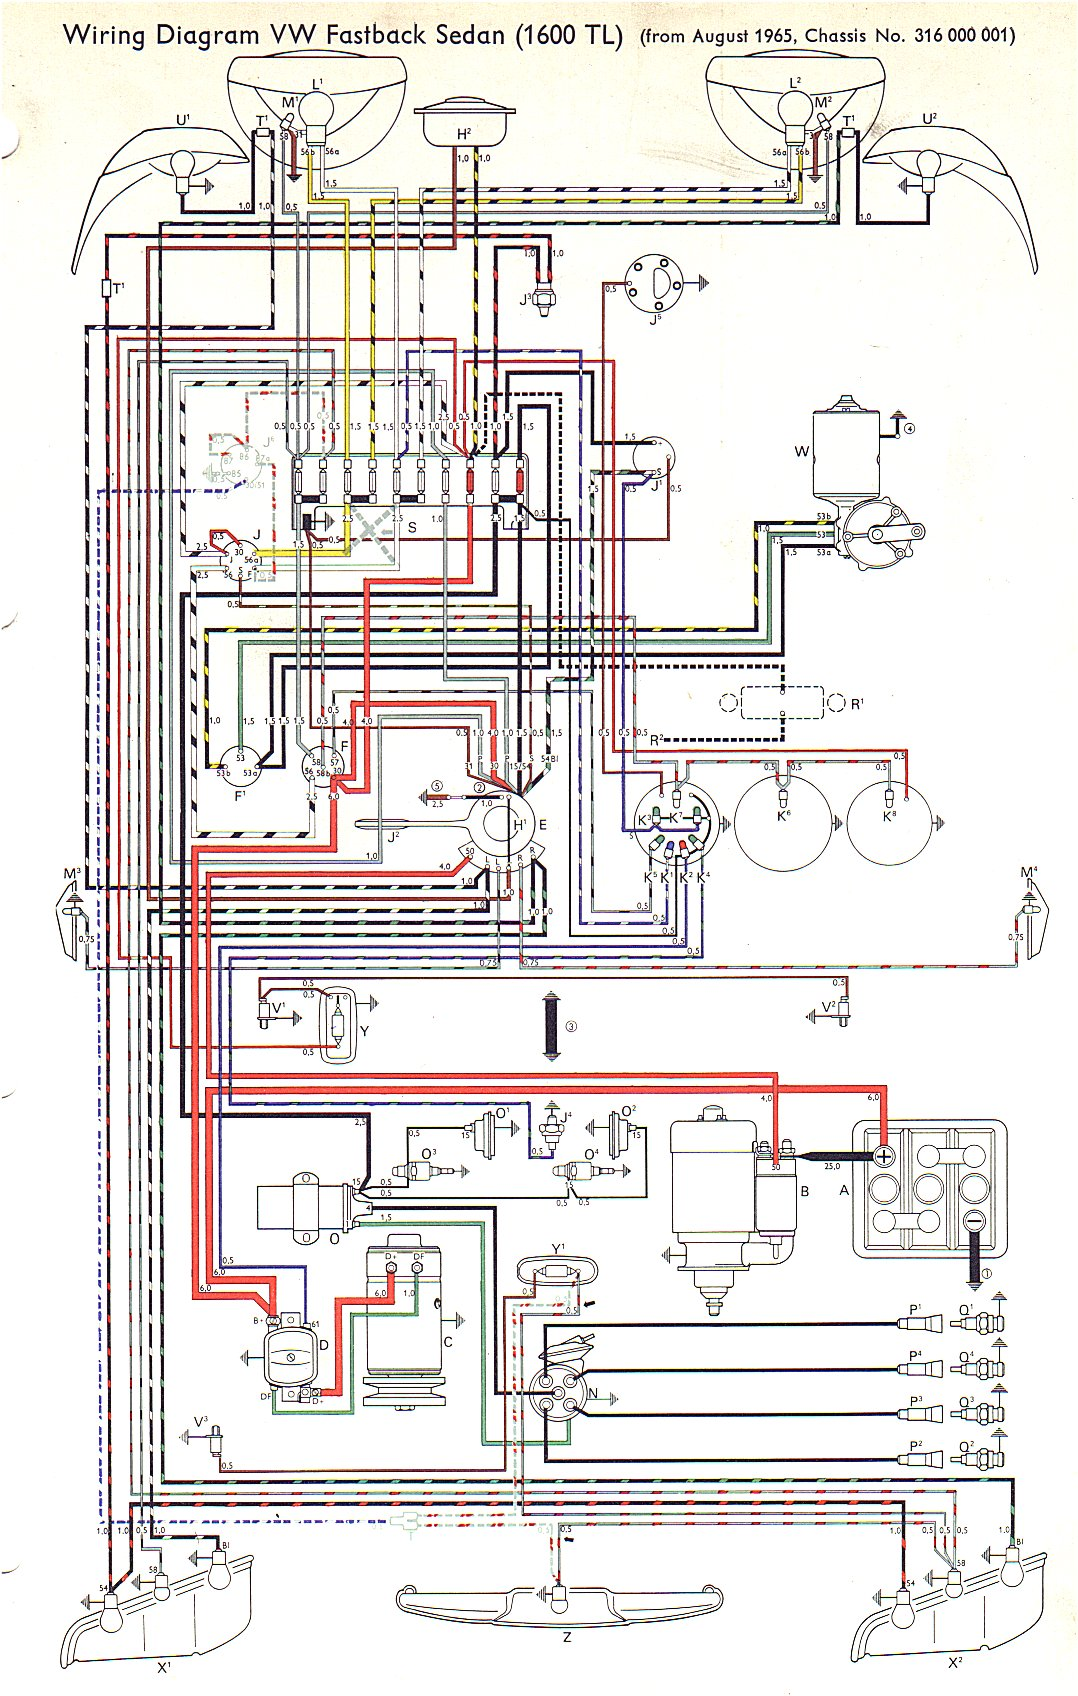 Ford Maverick Headlight Switch Wiring Diagram Layout Diagrams 1968 Vw Type 3 05 1958